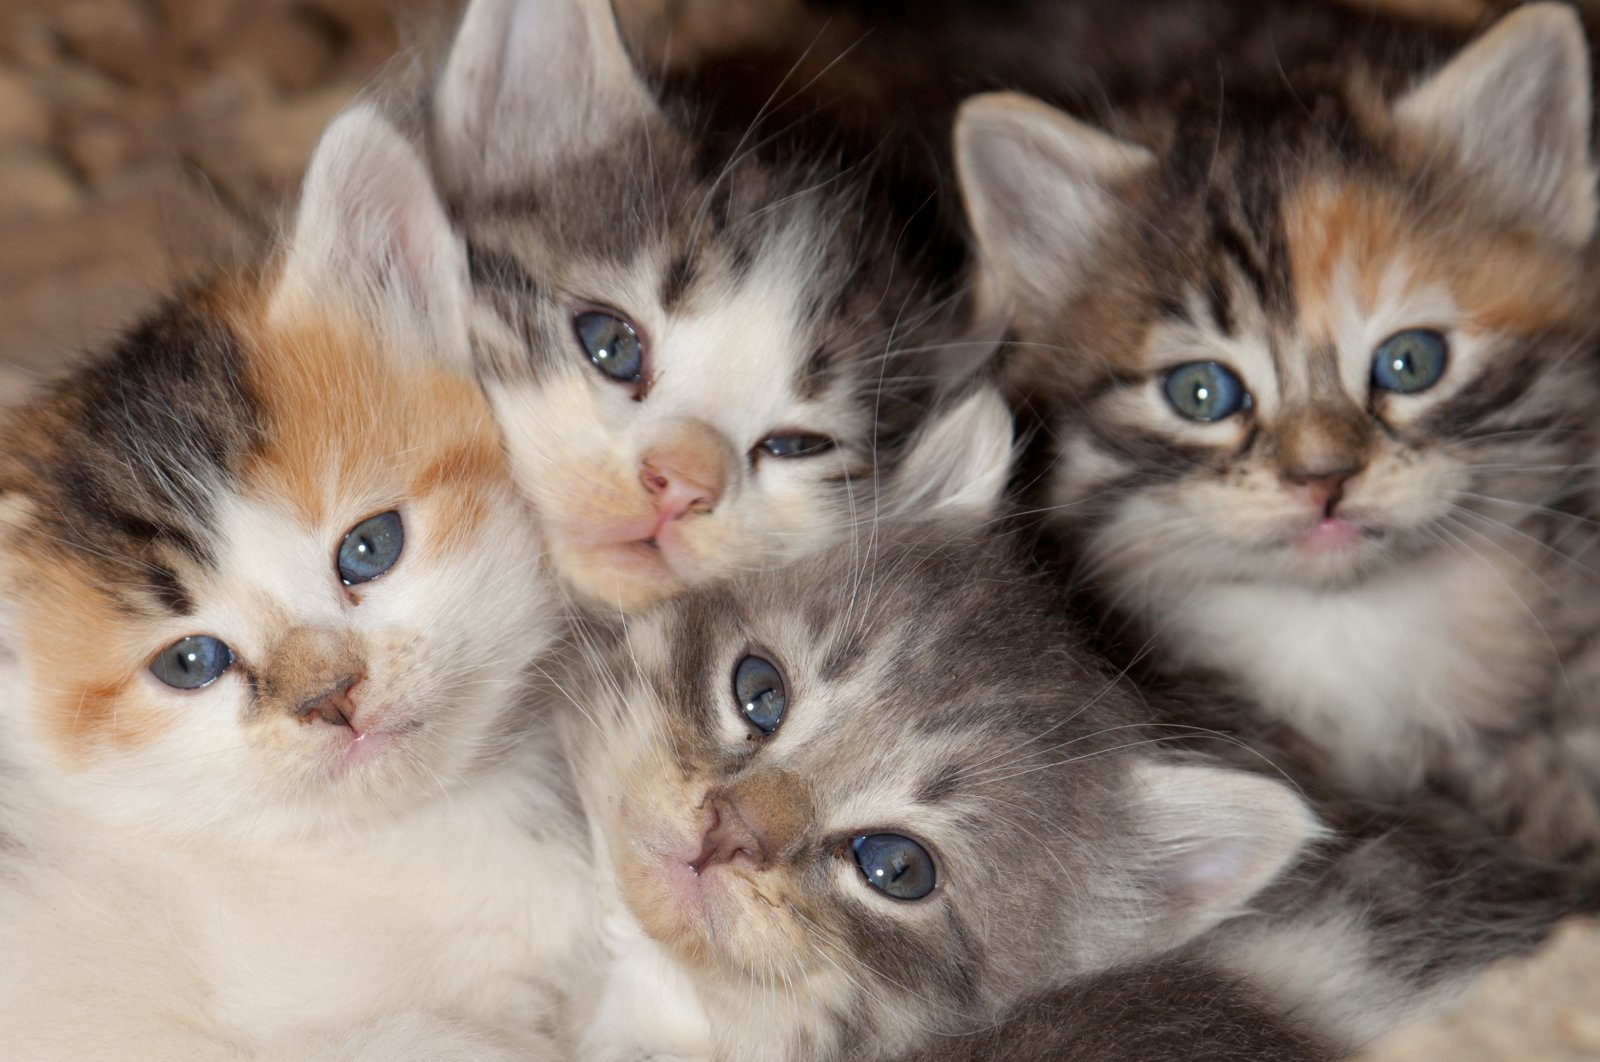 A litter of calico kittens. (Shutterstock Photo)